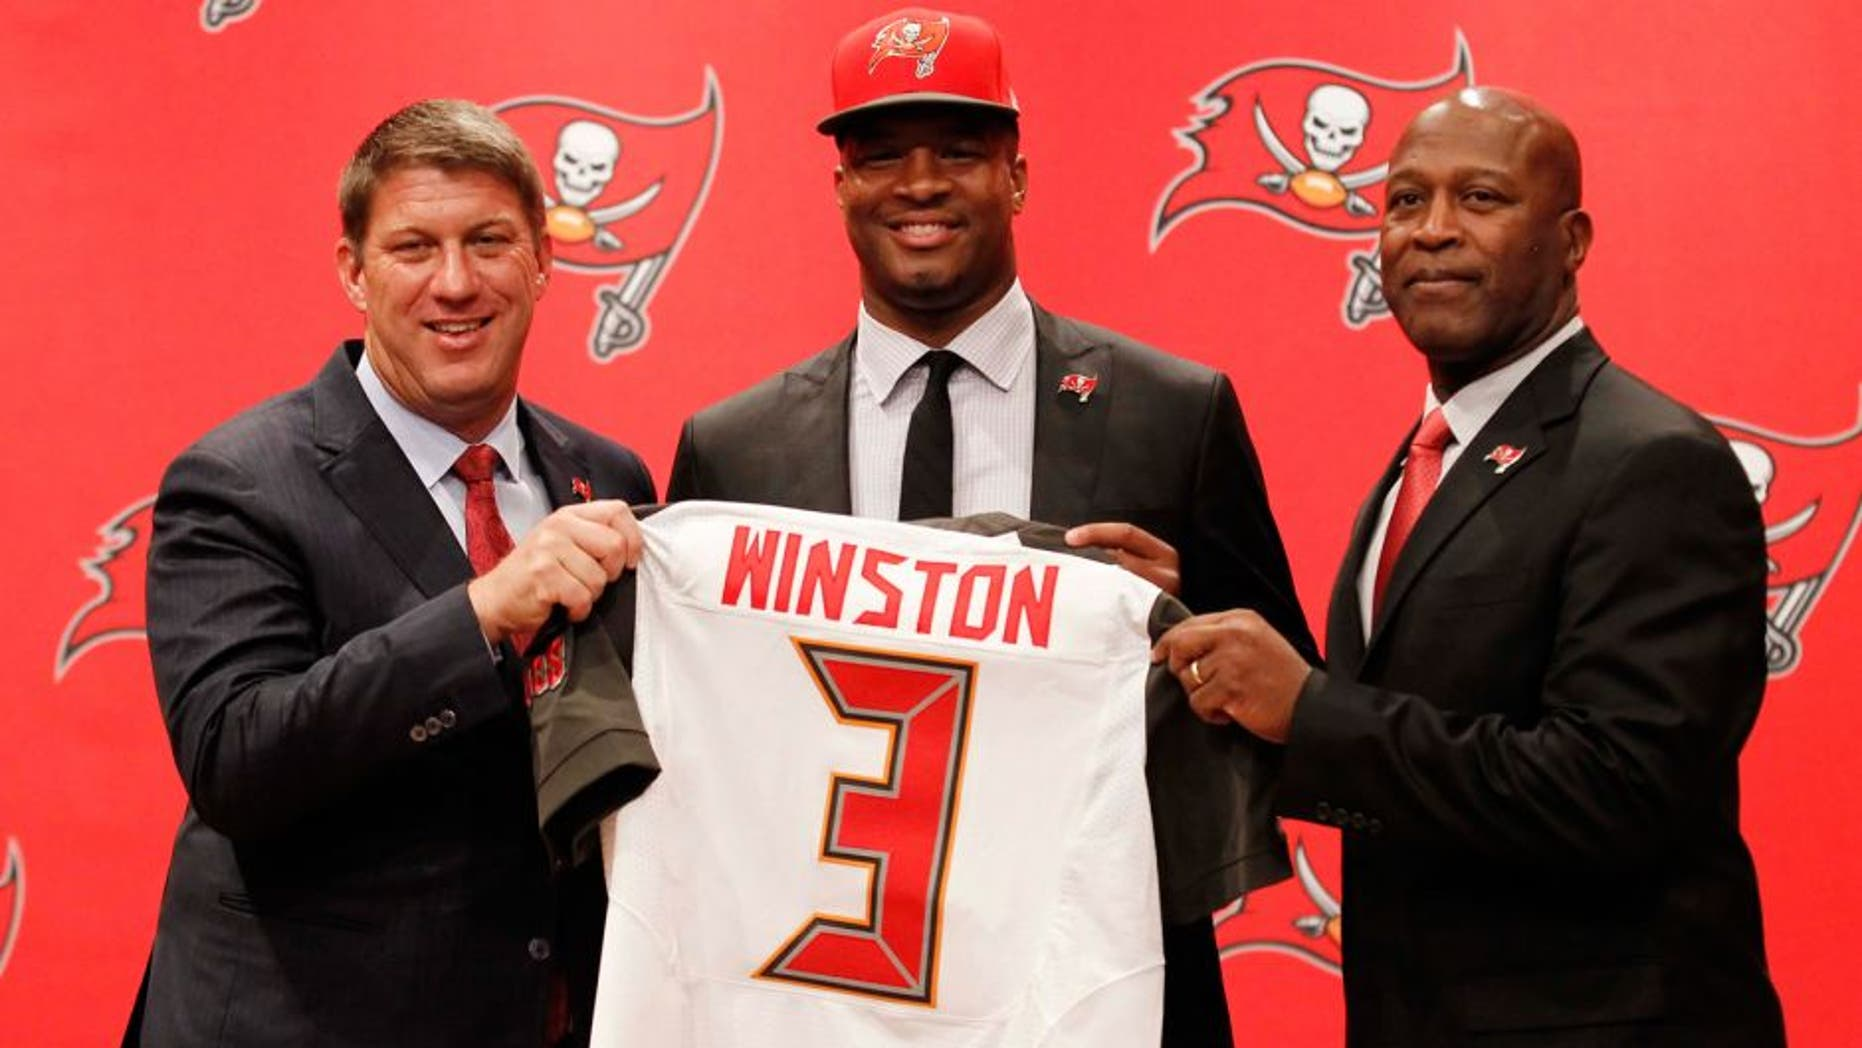 May 1, 2015; Tampa, FL, USA; Tampa Bay Buccaneers quarterback Jameis Winston (3), the number one overall draft pick, poses with general manager Jason Licht and head coach Lovie Smith for a photo during a press conference at One Buc Place. Mandatory Credit: Kim Klement-USA TODAY Sports